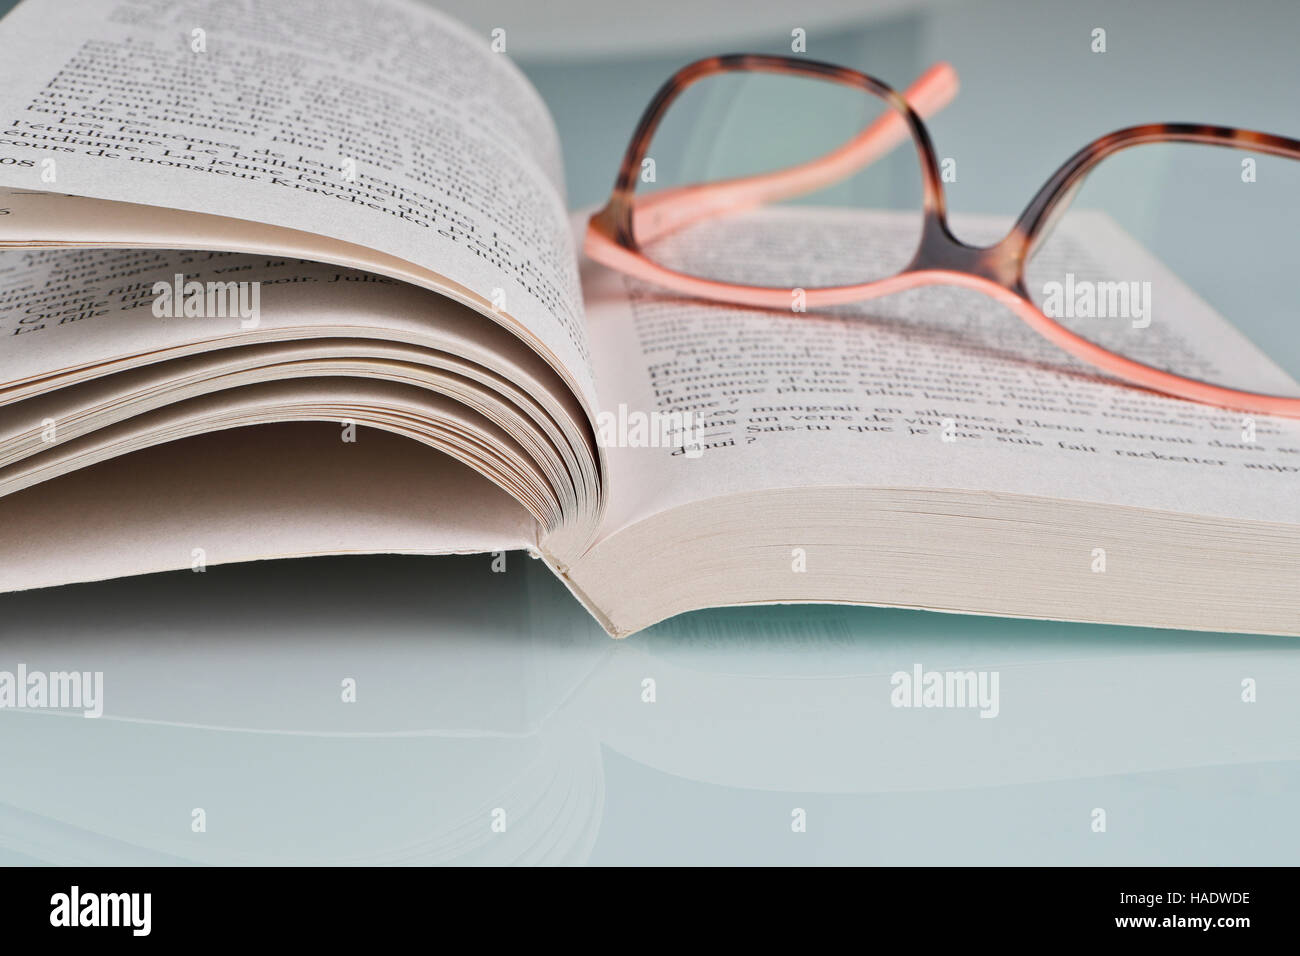 Open book and eye glasses - Stock Image